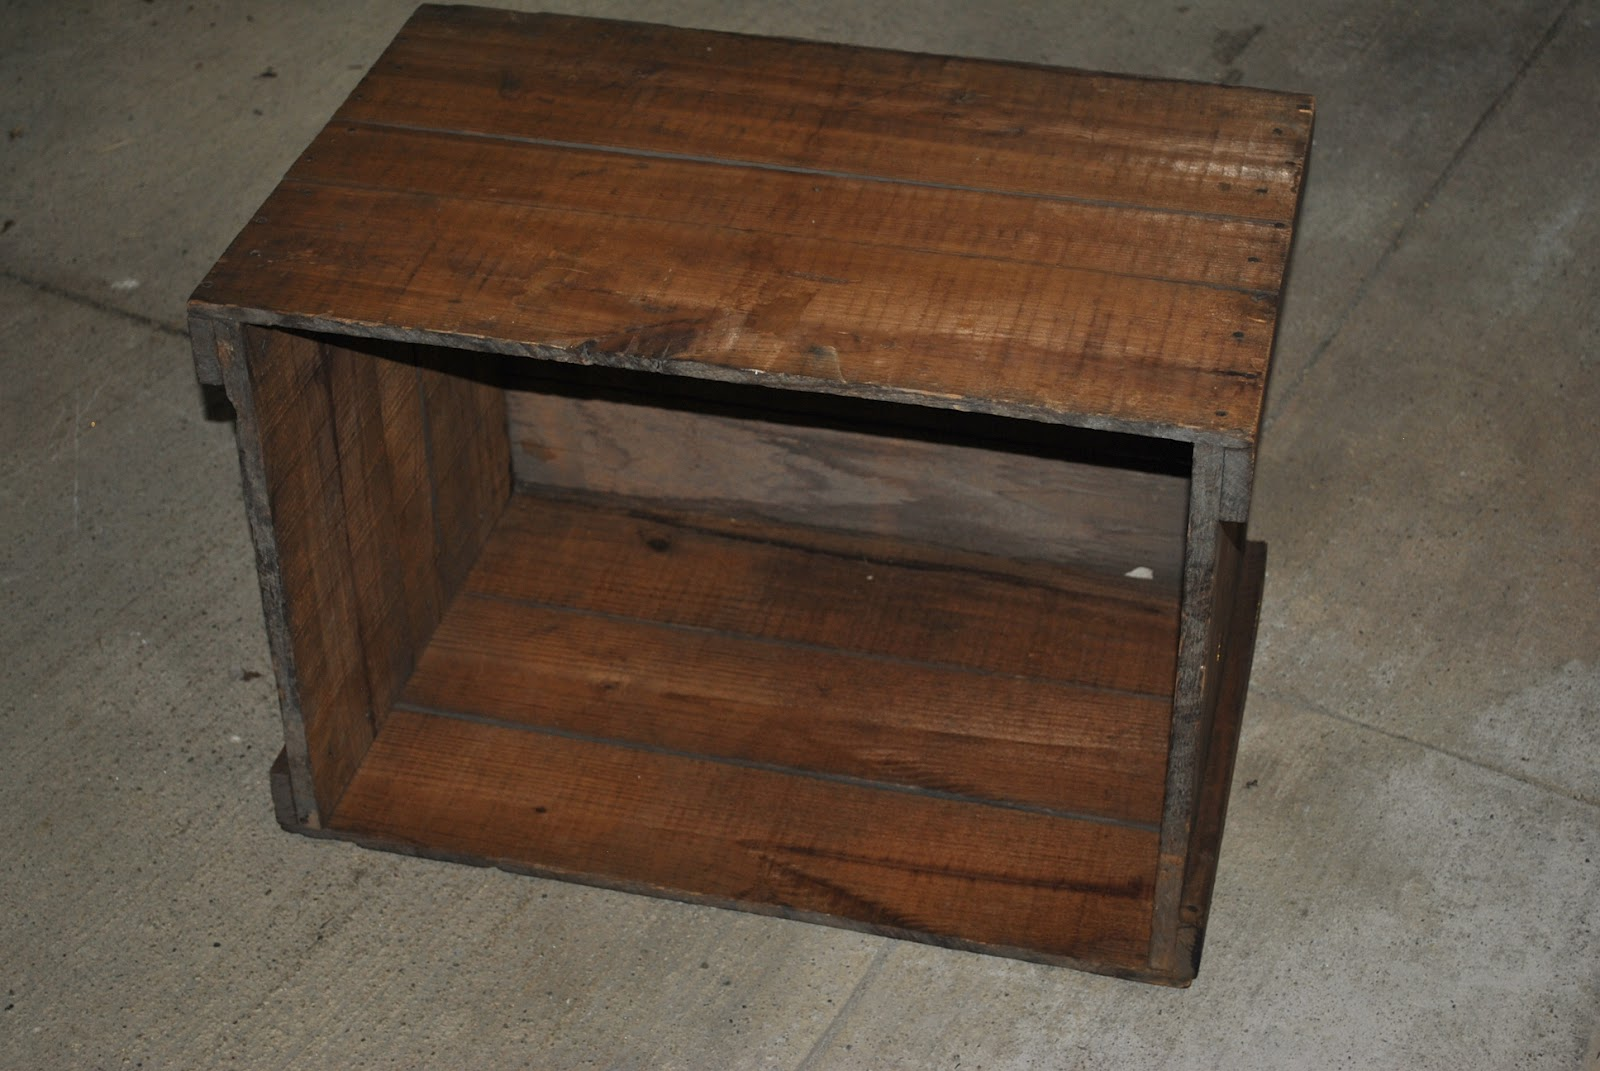 Freckle: Wooden Crate DIY Projects: Side Table and Storage ...